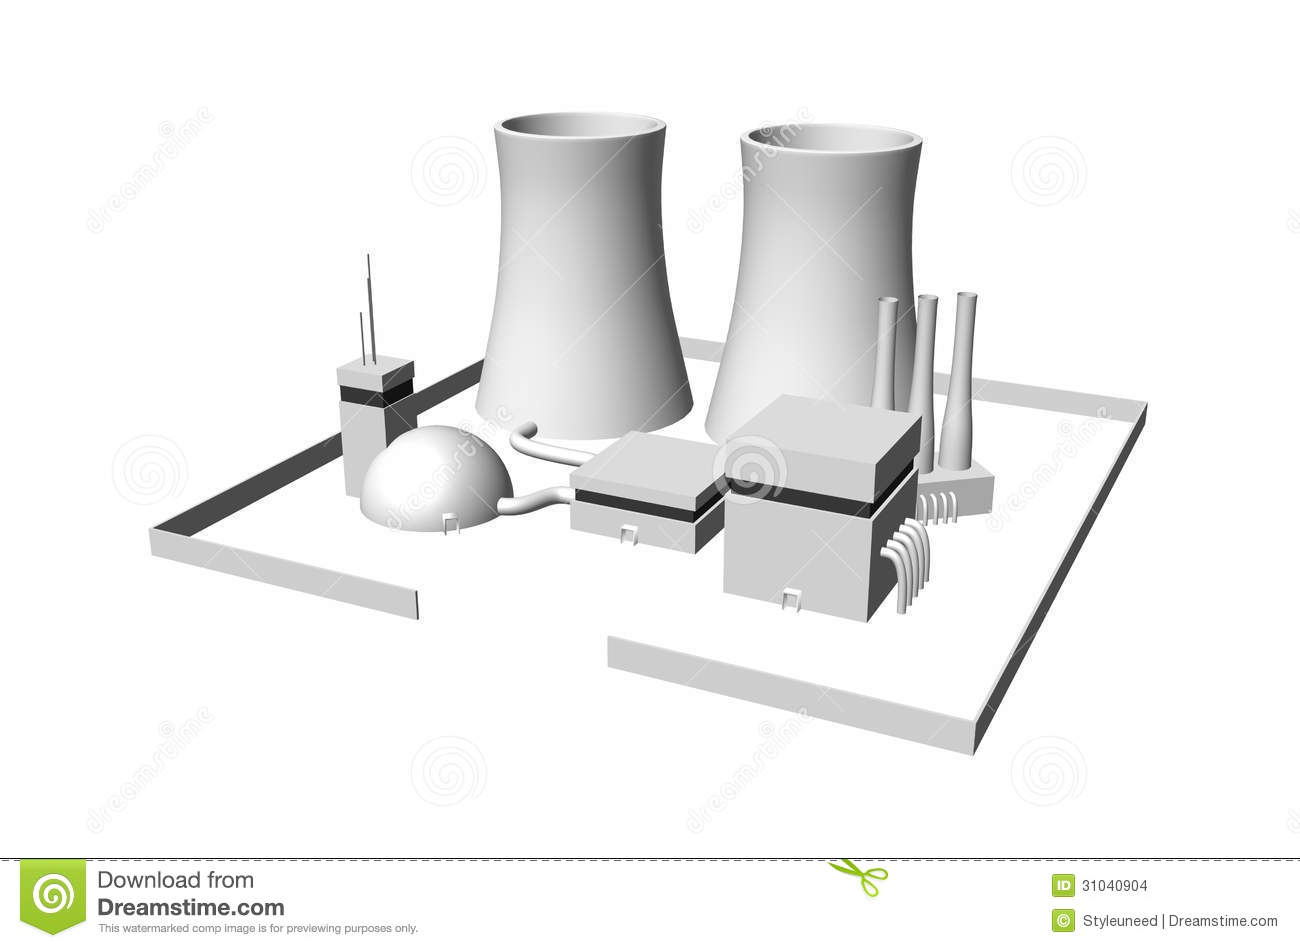 Nuclear Power Plant Stock Photo Image Of Industrial 31040904 Diagram Animation